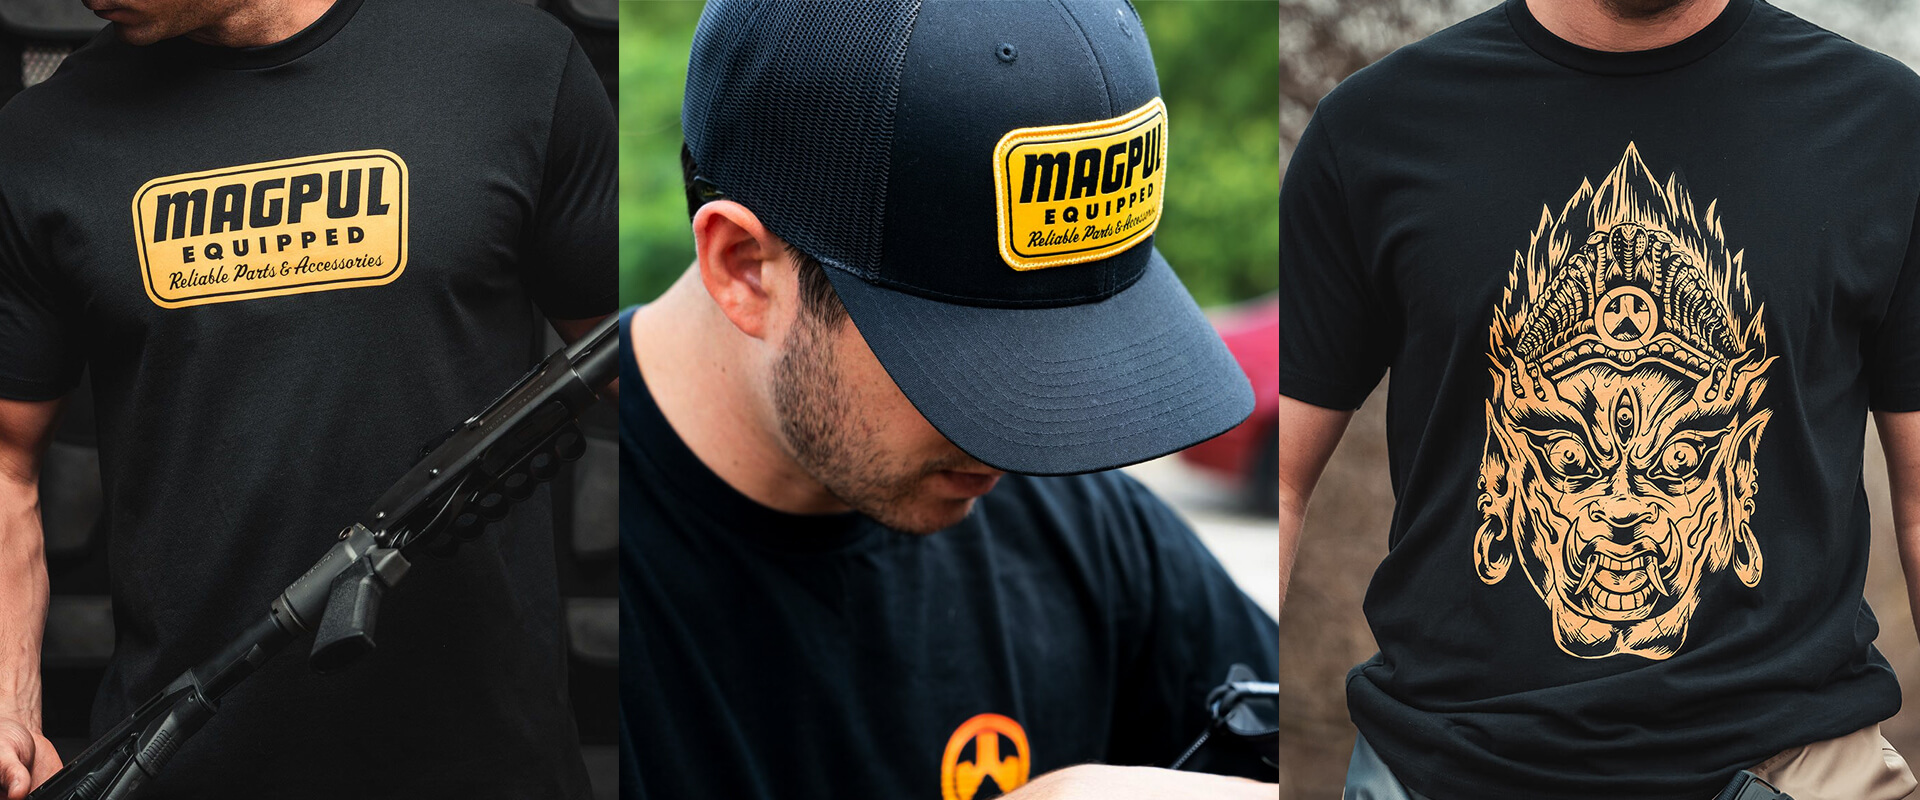 Magpul Efreeti tee plus Equipped Trucker hat and t-shirt